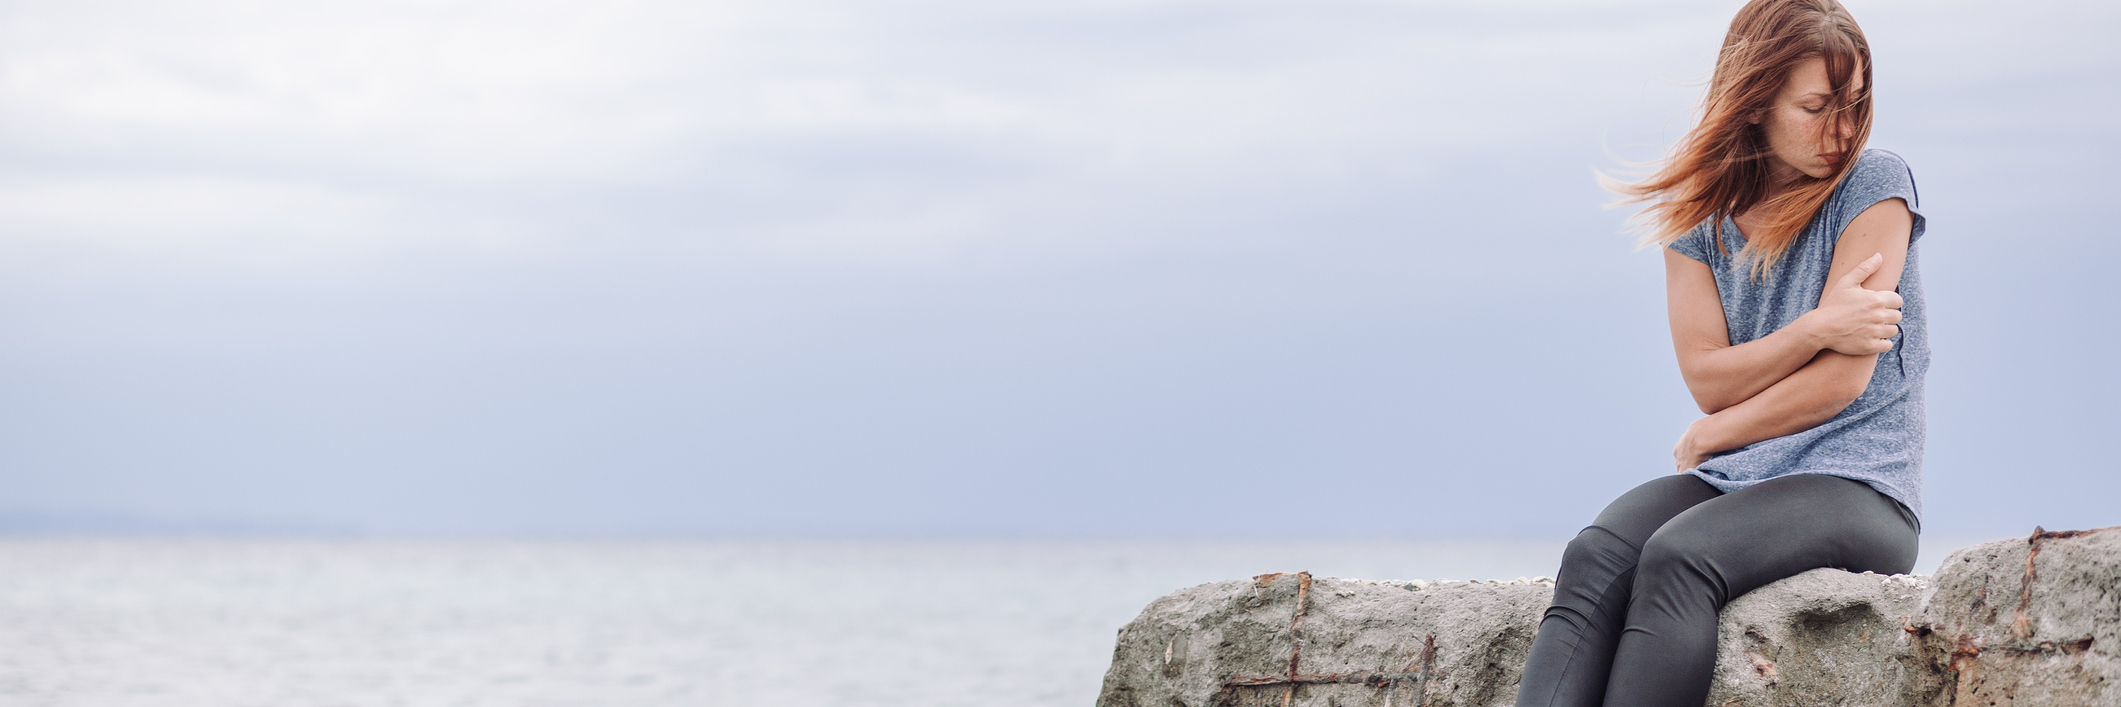 woman alone at seaside sitting on rocks looking depressed arms folded